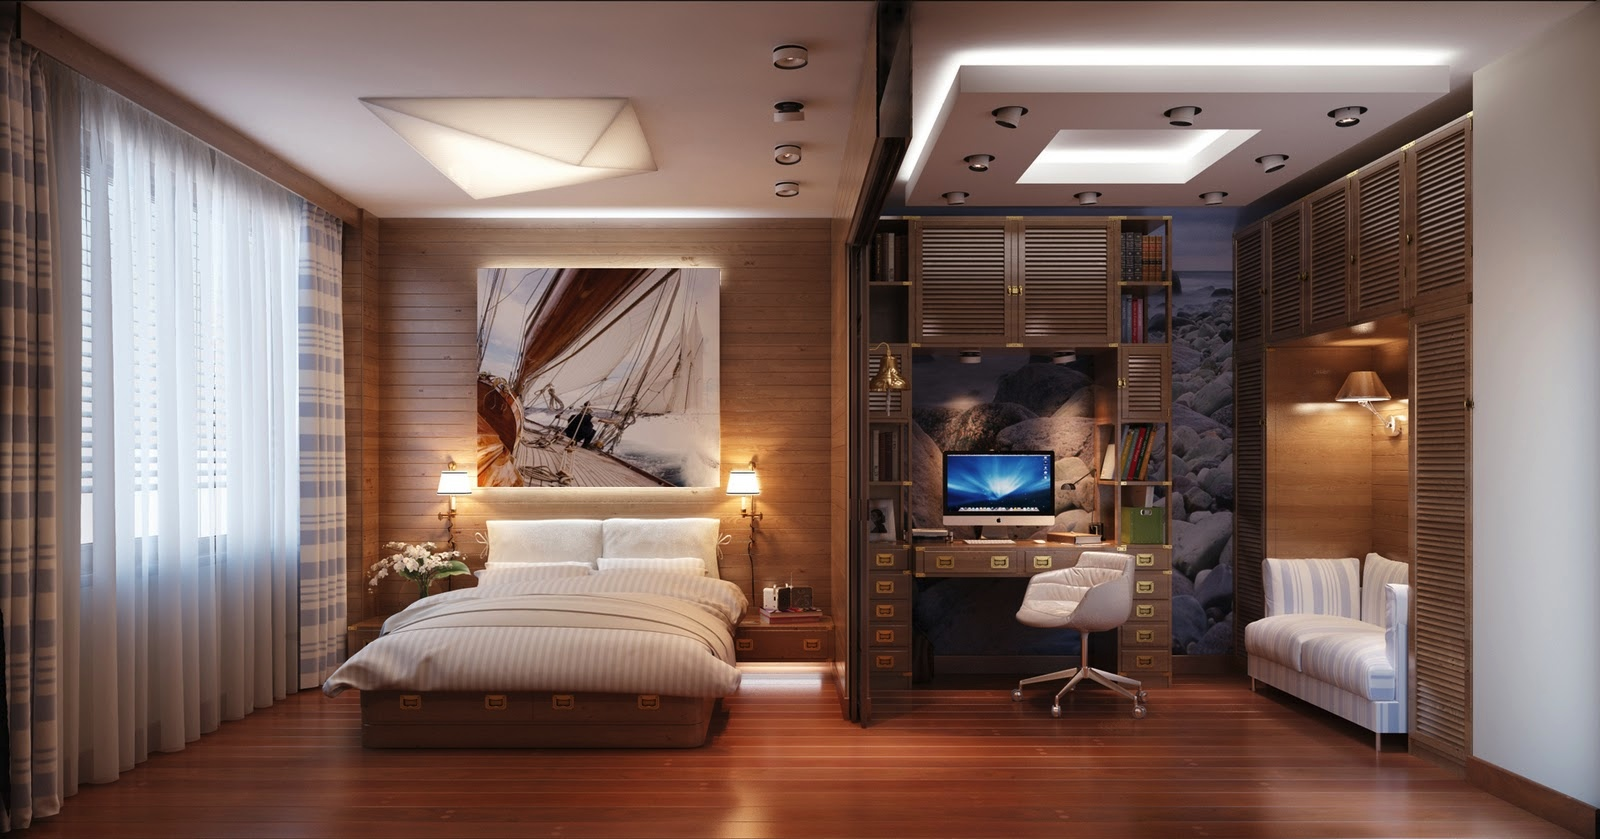 Bedroom home office interior design ideas Home interior design bedroom